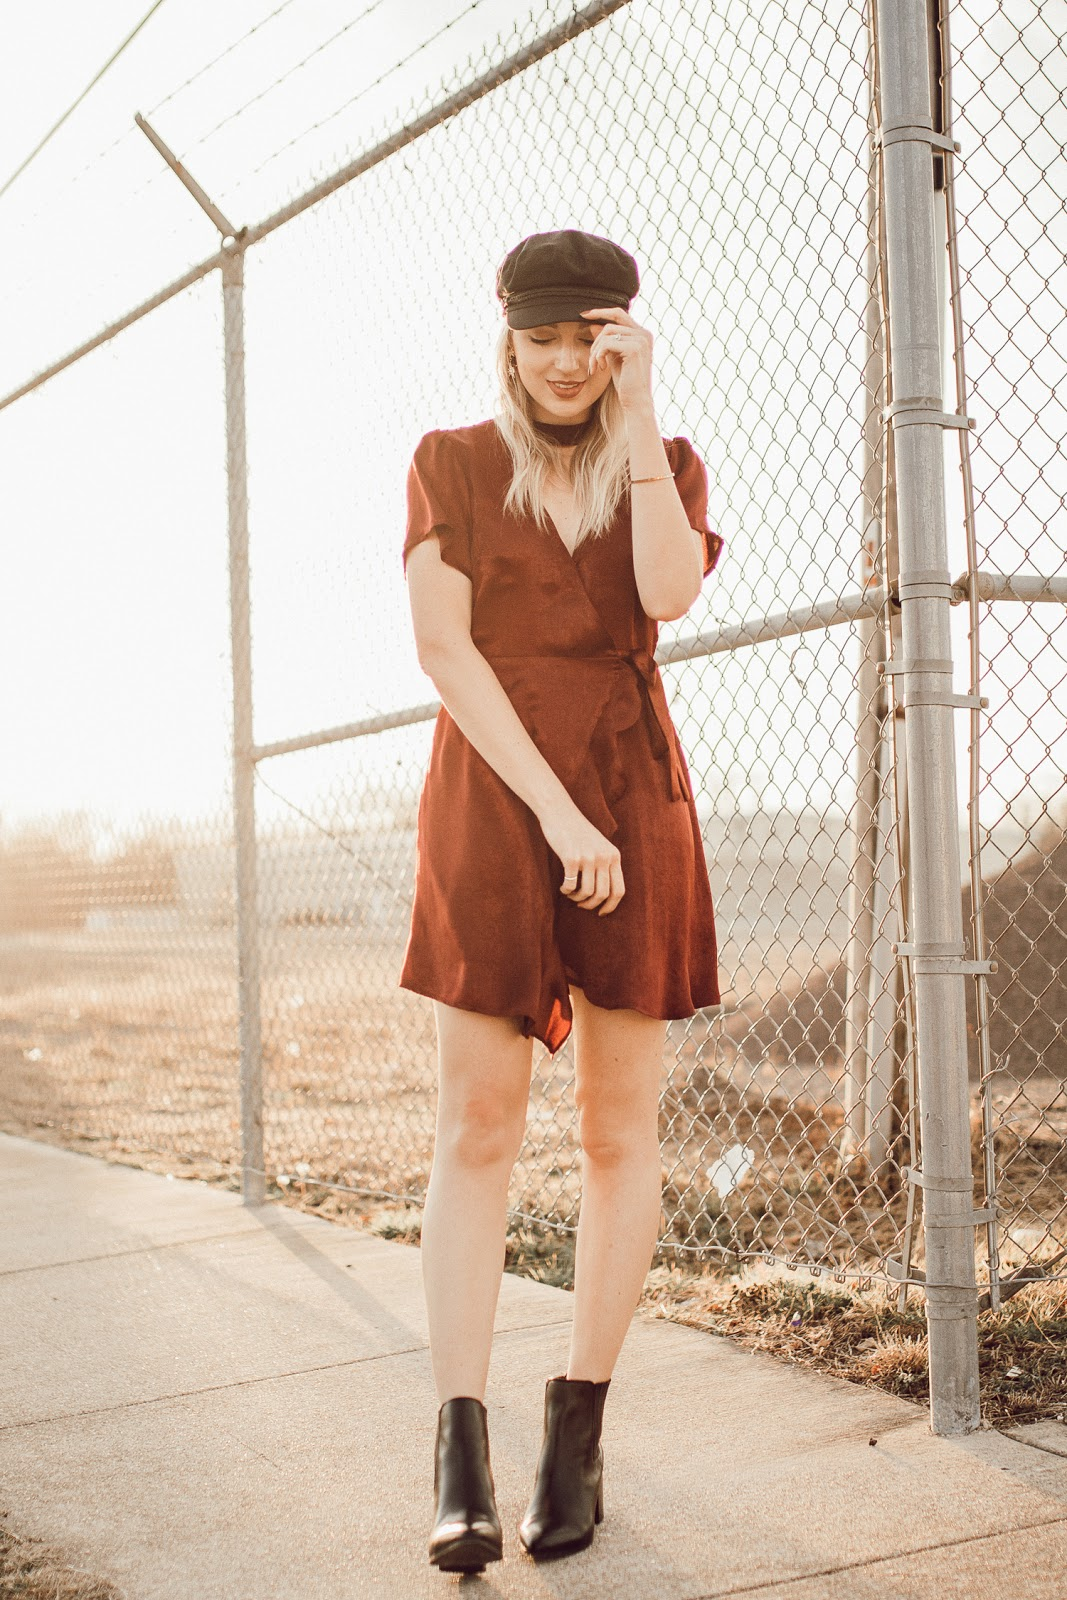 satin dress dressed down with ankle boots and a hat